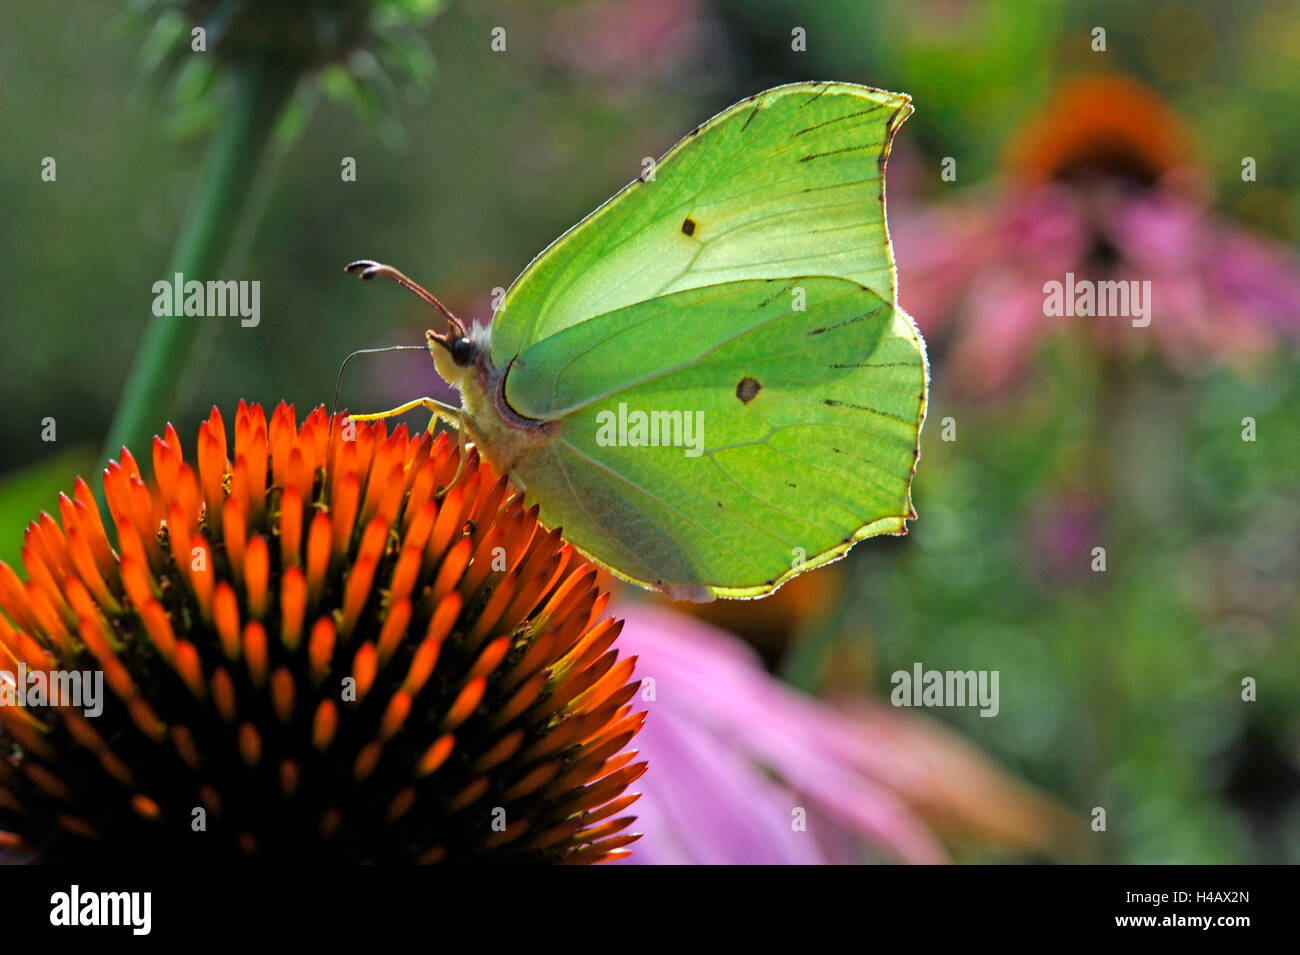 Brimstone butterfly lowering the proboscis in the tongue blossoms of a purple coneflower, also Rudbeckia, in the - Stock Image